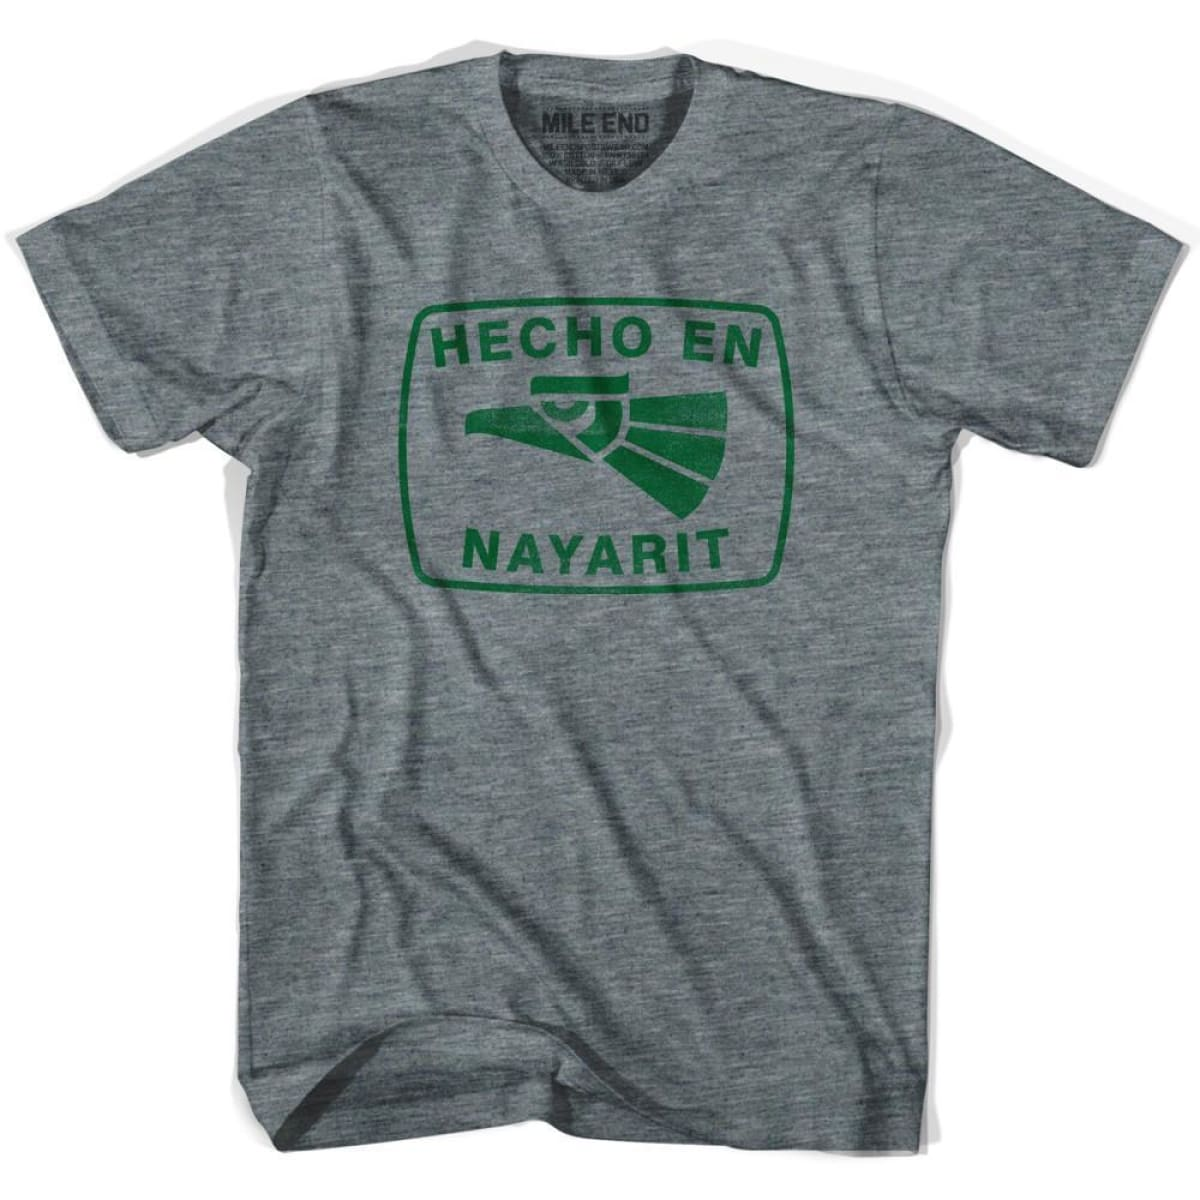 Hecho En Nayarit Vintage T-shirt - Athletic Grey / Youth X-Small - Hecho En